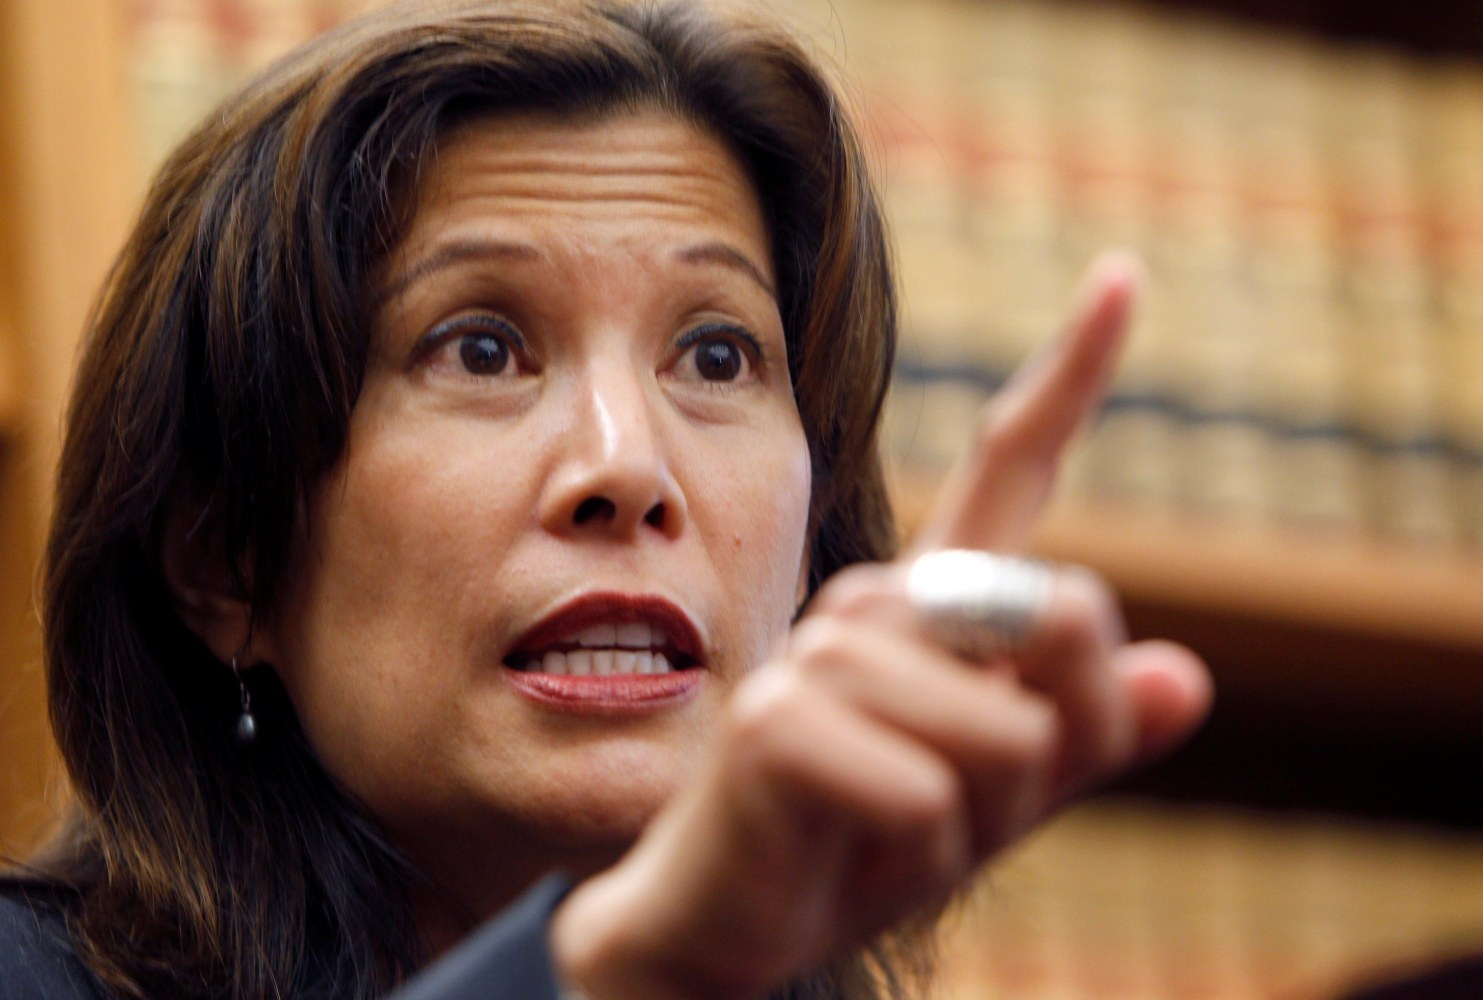 Chief Justice Cantil-Sakauye Objects to ICE Tactics at California Courthouses